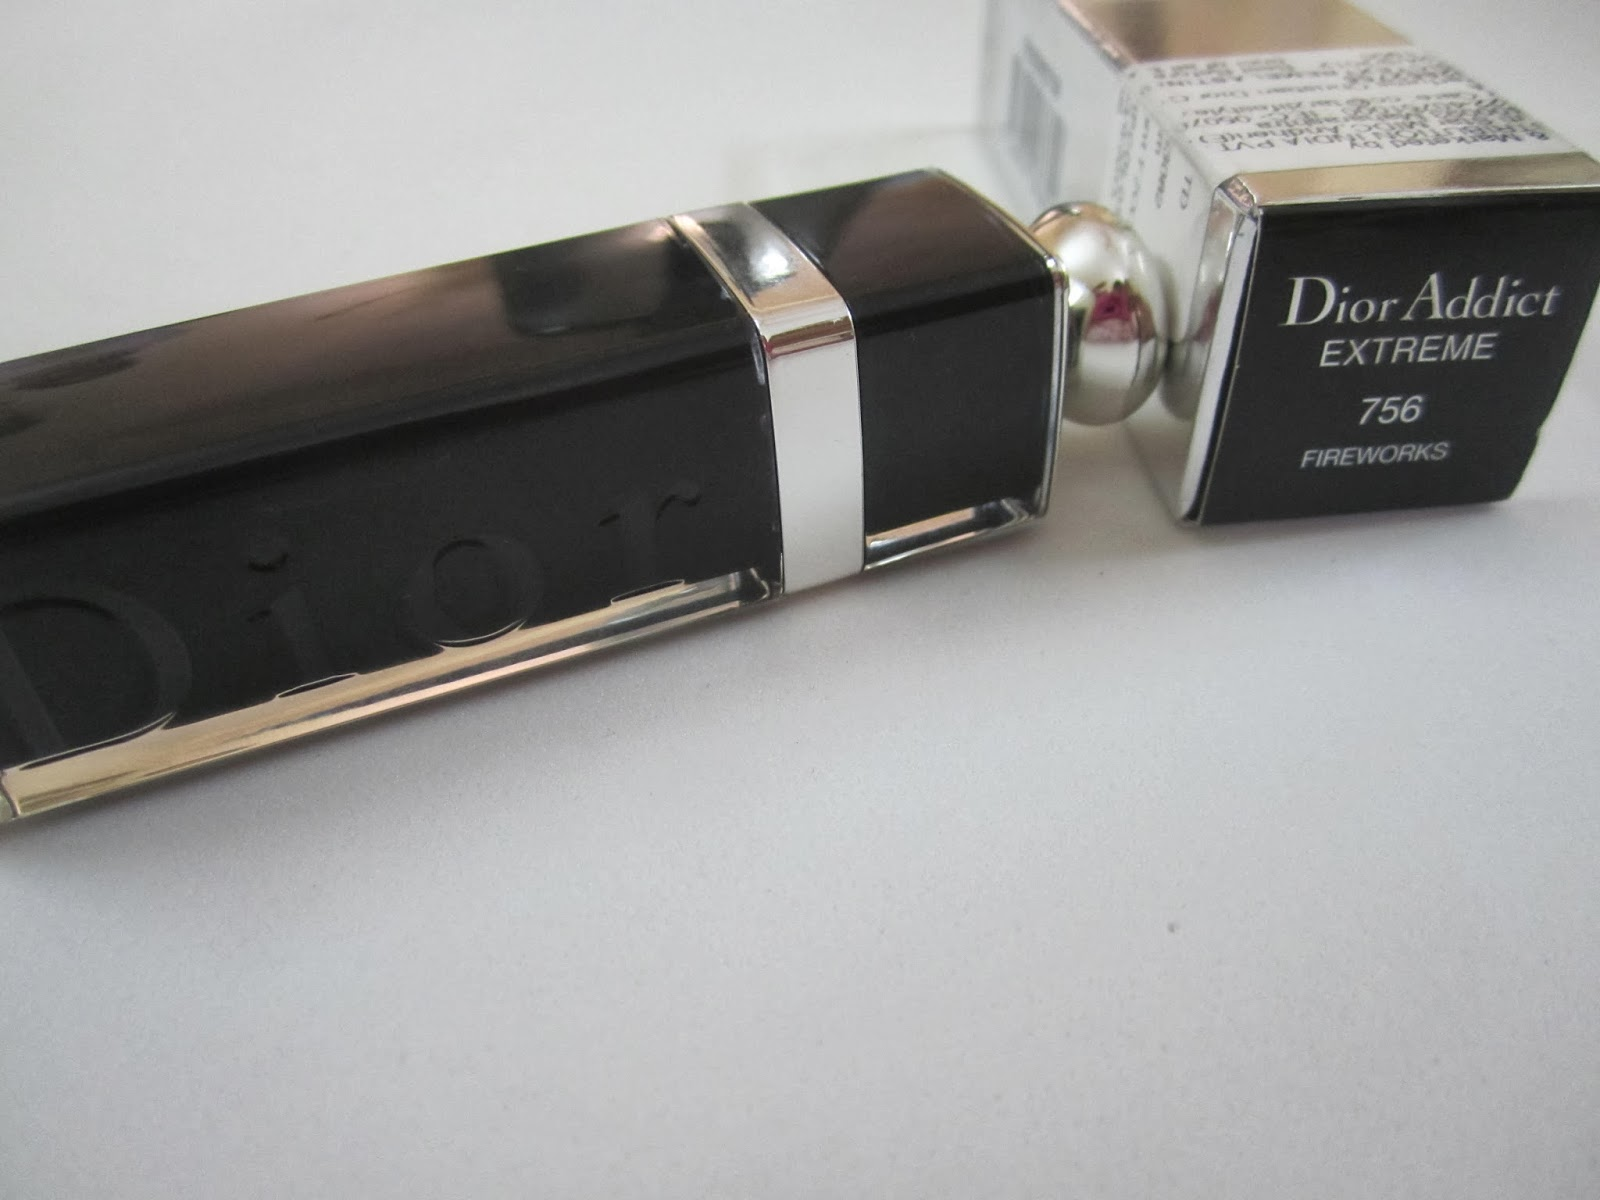 Dior Addict Extreme in Fireworks 756